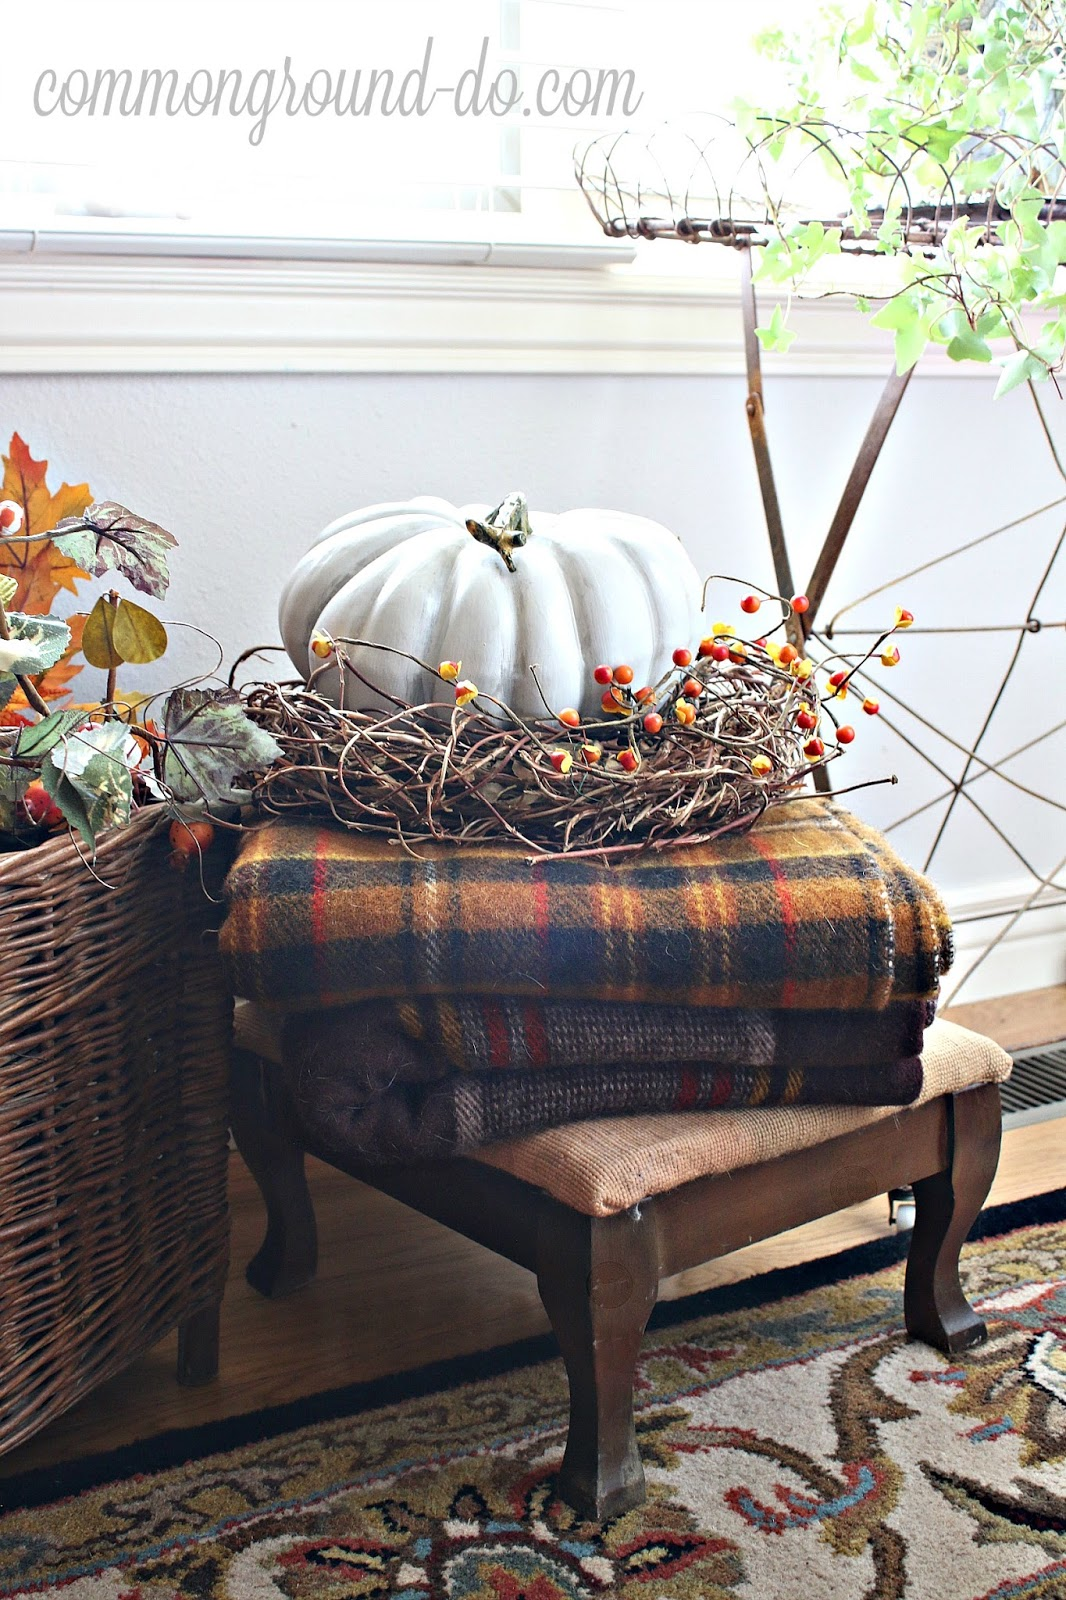 How Long Do Air Conditioners Last >> common ground : Vintage Basket Refresh for Fall